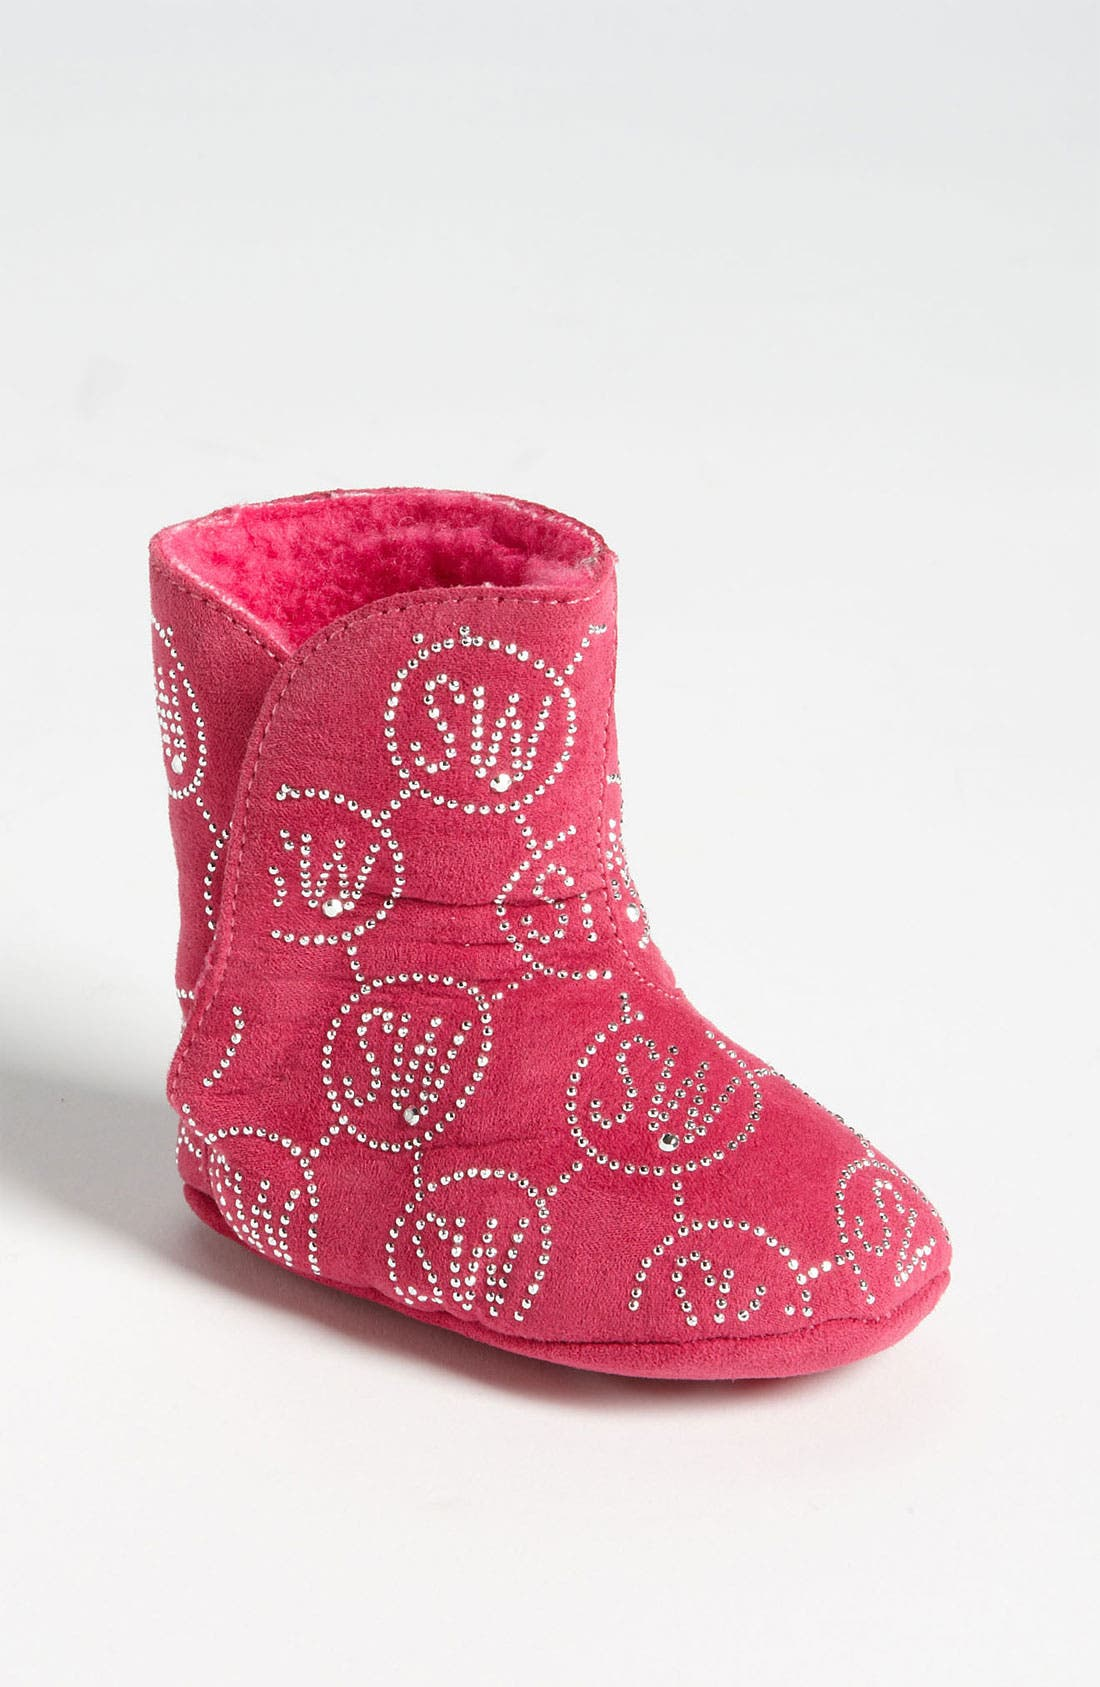 Alternate Image 1 Selected - Stuart Weitzman 'Baby Flirt' Crib Bootie (Baby)